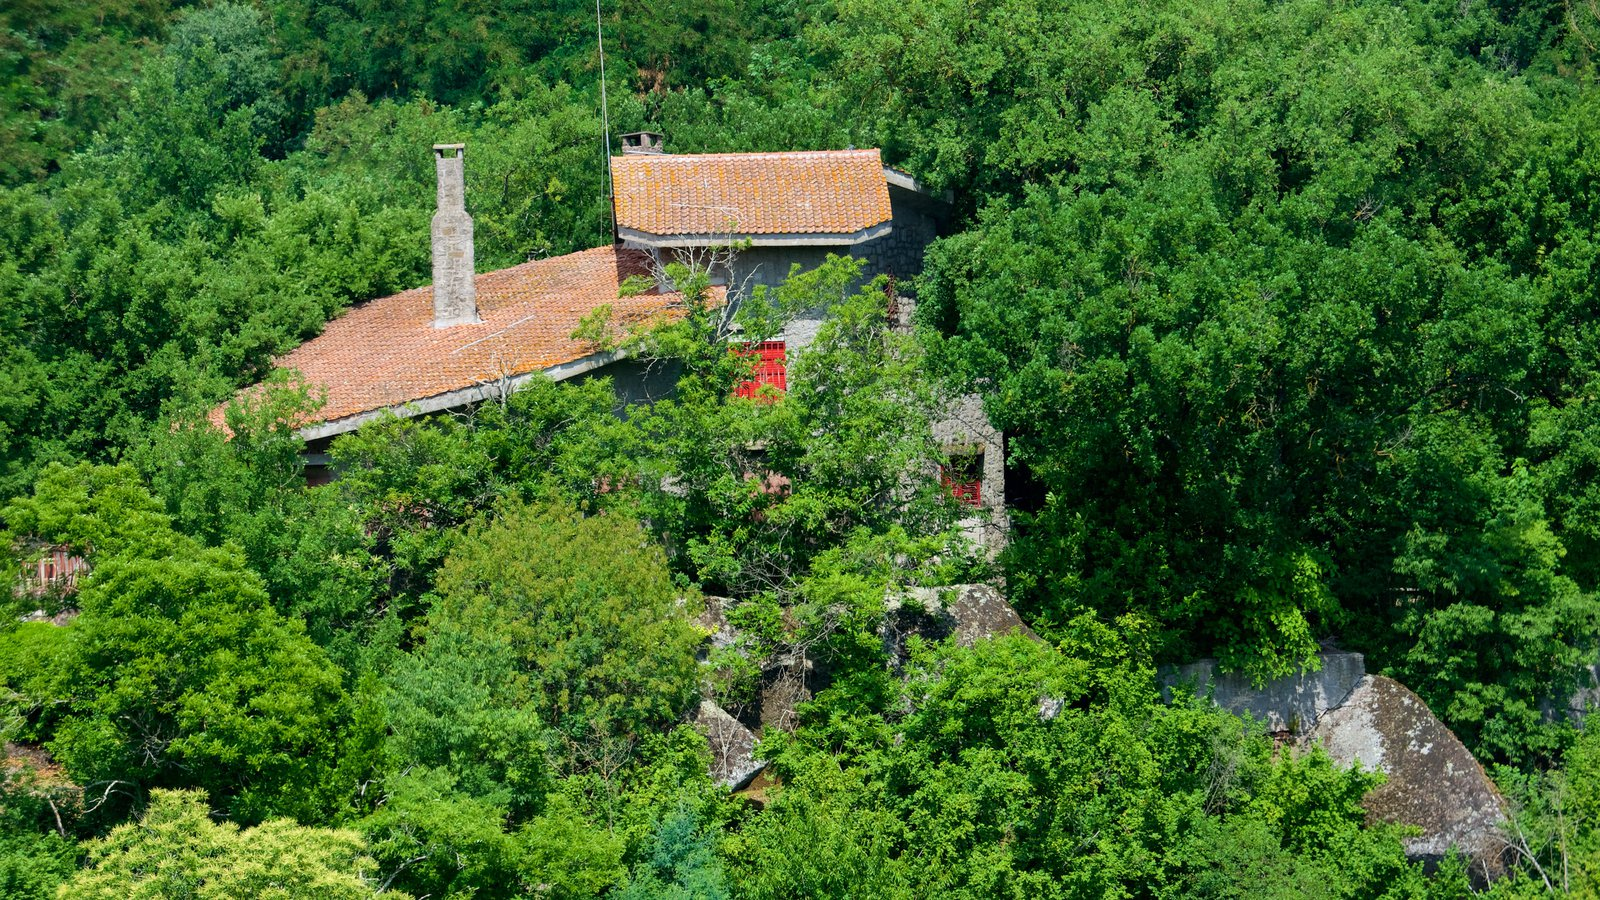 Vitorchiano which includes forests and a house